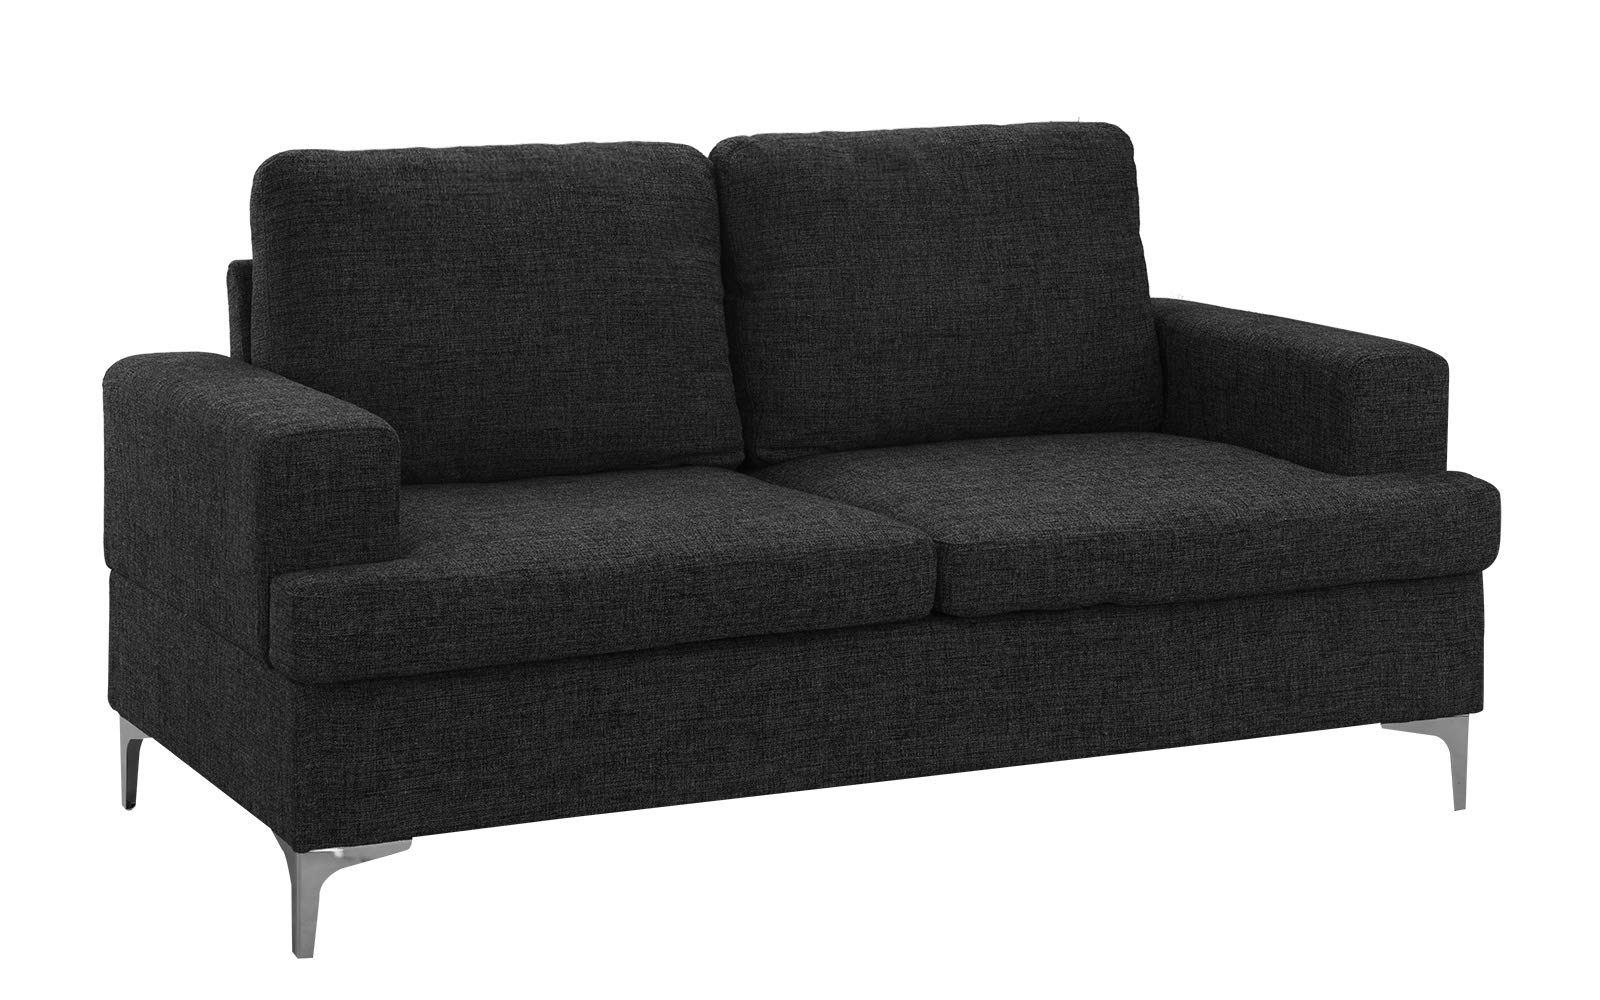 Mid Century Modern Linen Fabric Loveseat Couch (Dark Grey) by Casa Andrea Milano